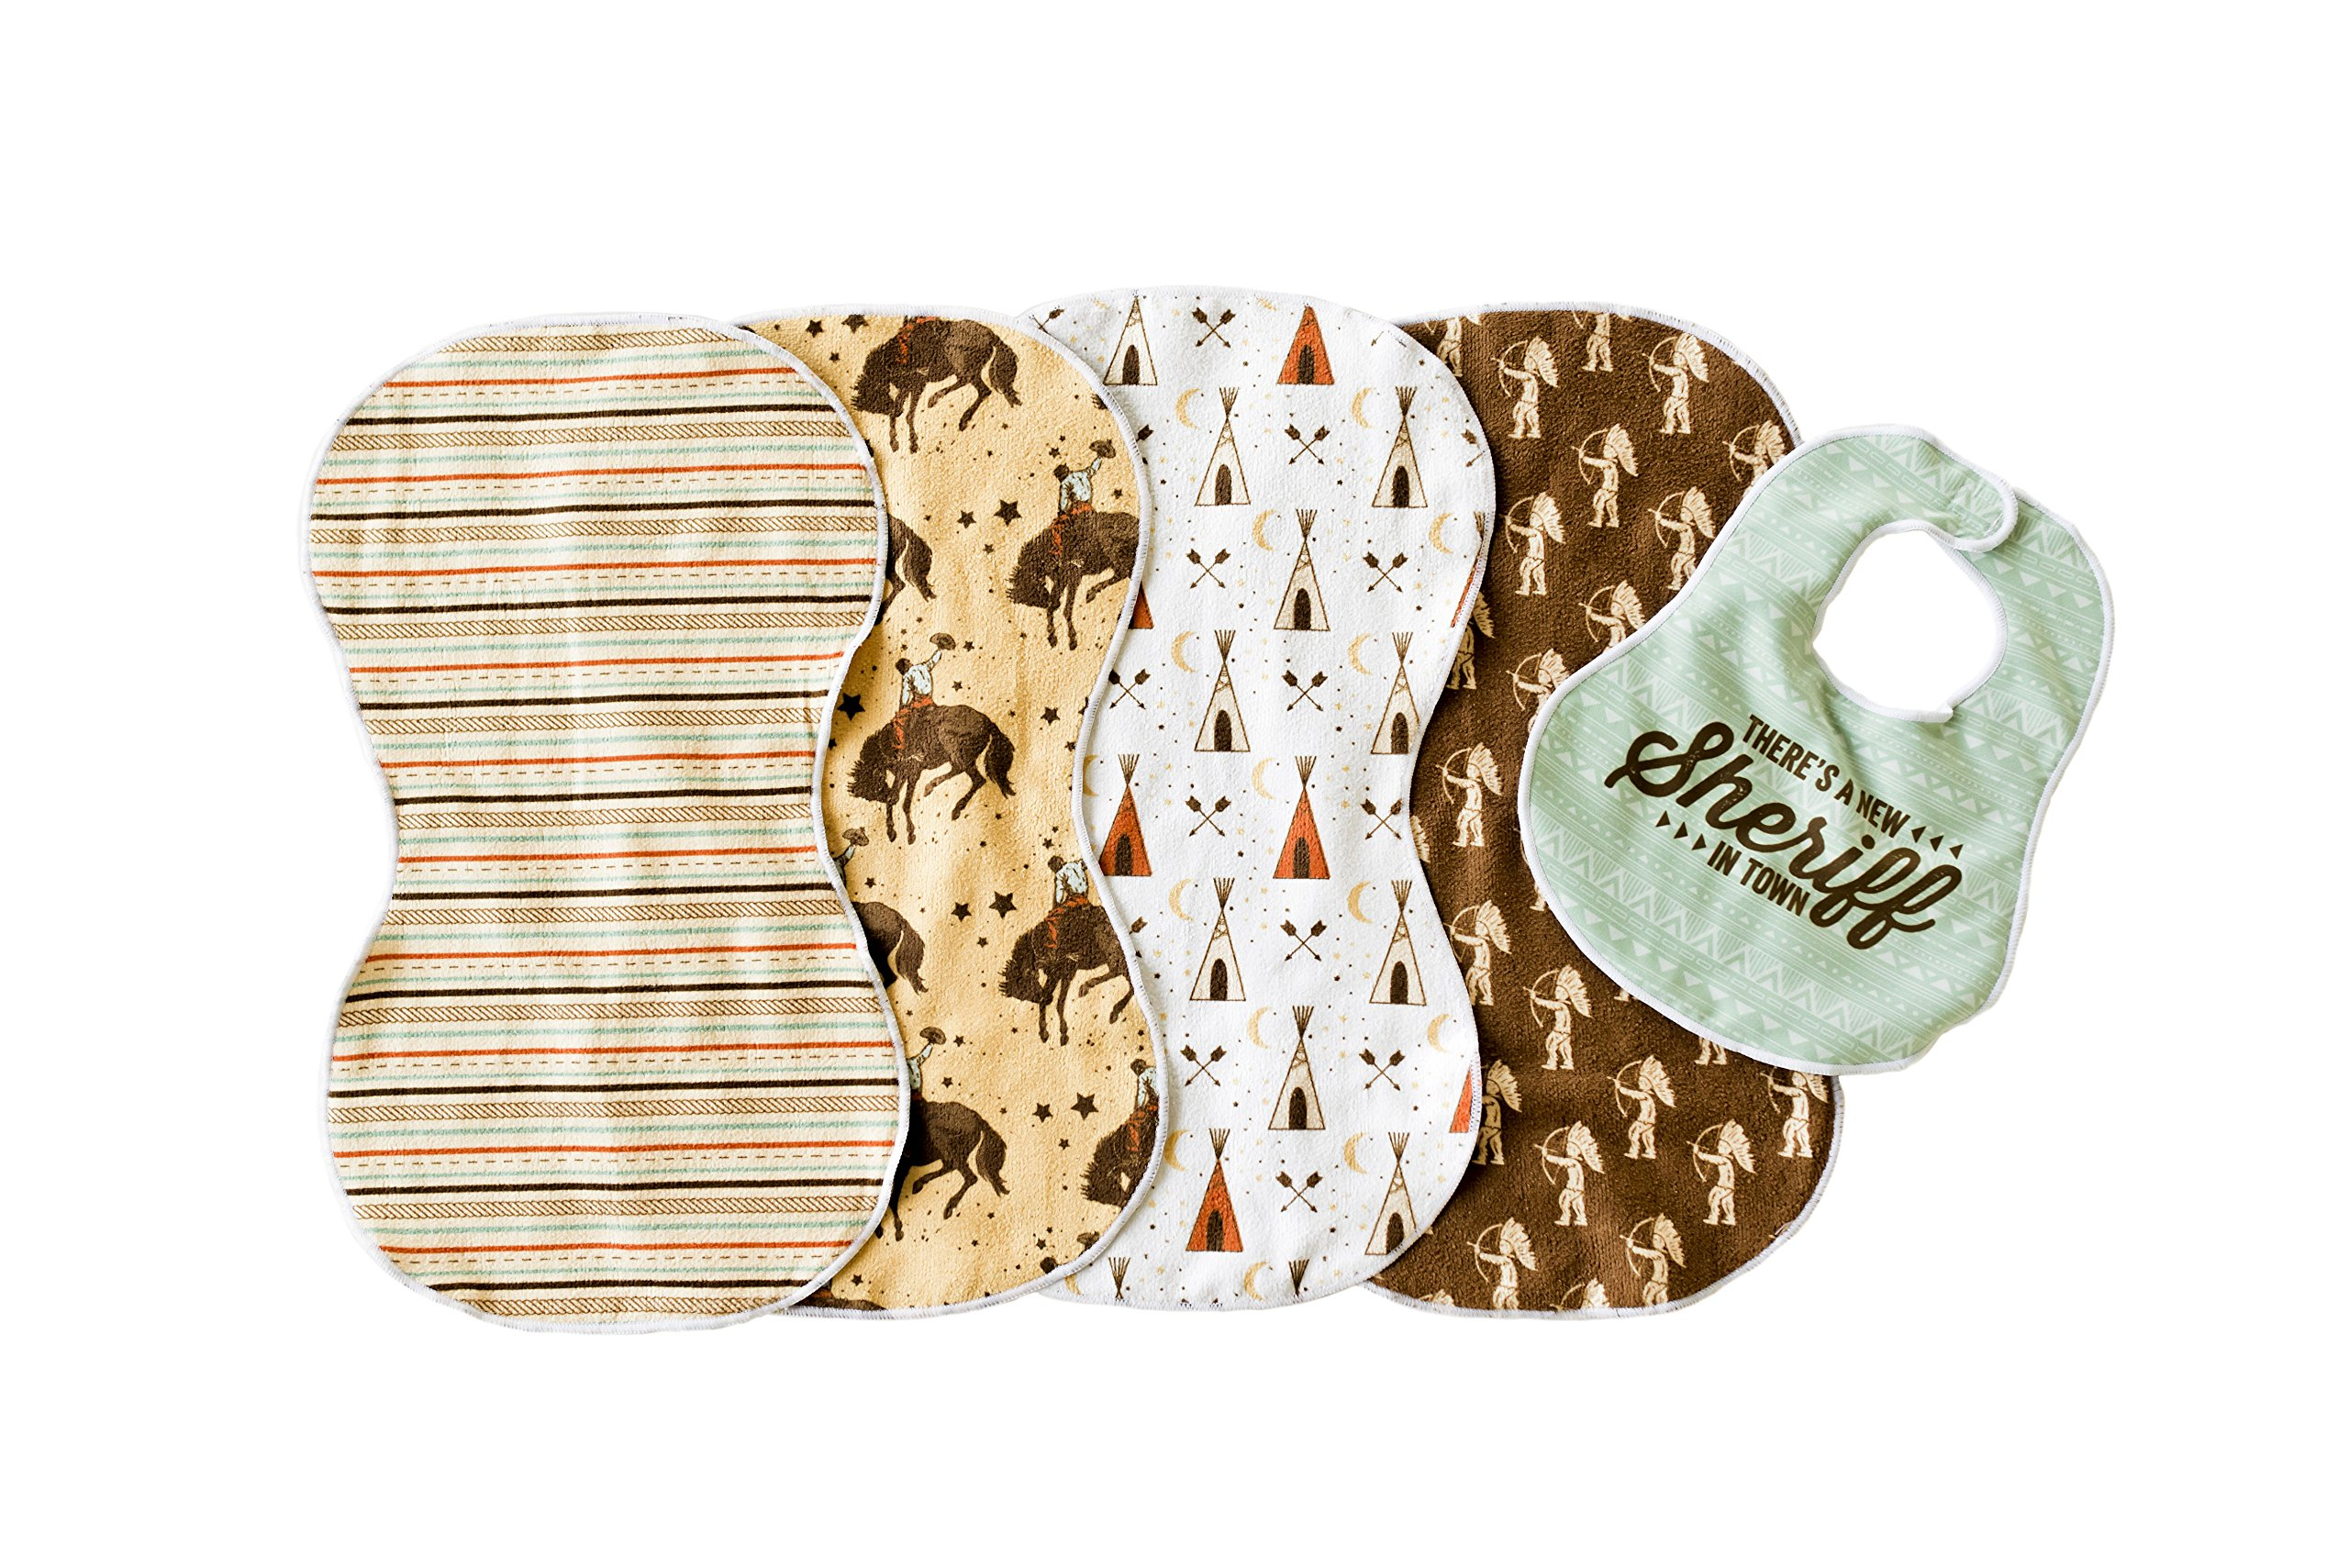 Imperfect Penelopy Wild West 5PK Burp Cloths for Boys- 4 Double Sided Microfiber Terry Burp Cloths and Matching Bib Set, Extra Large, For Newborns